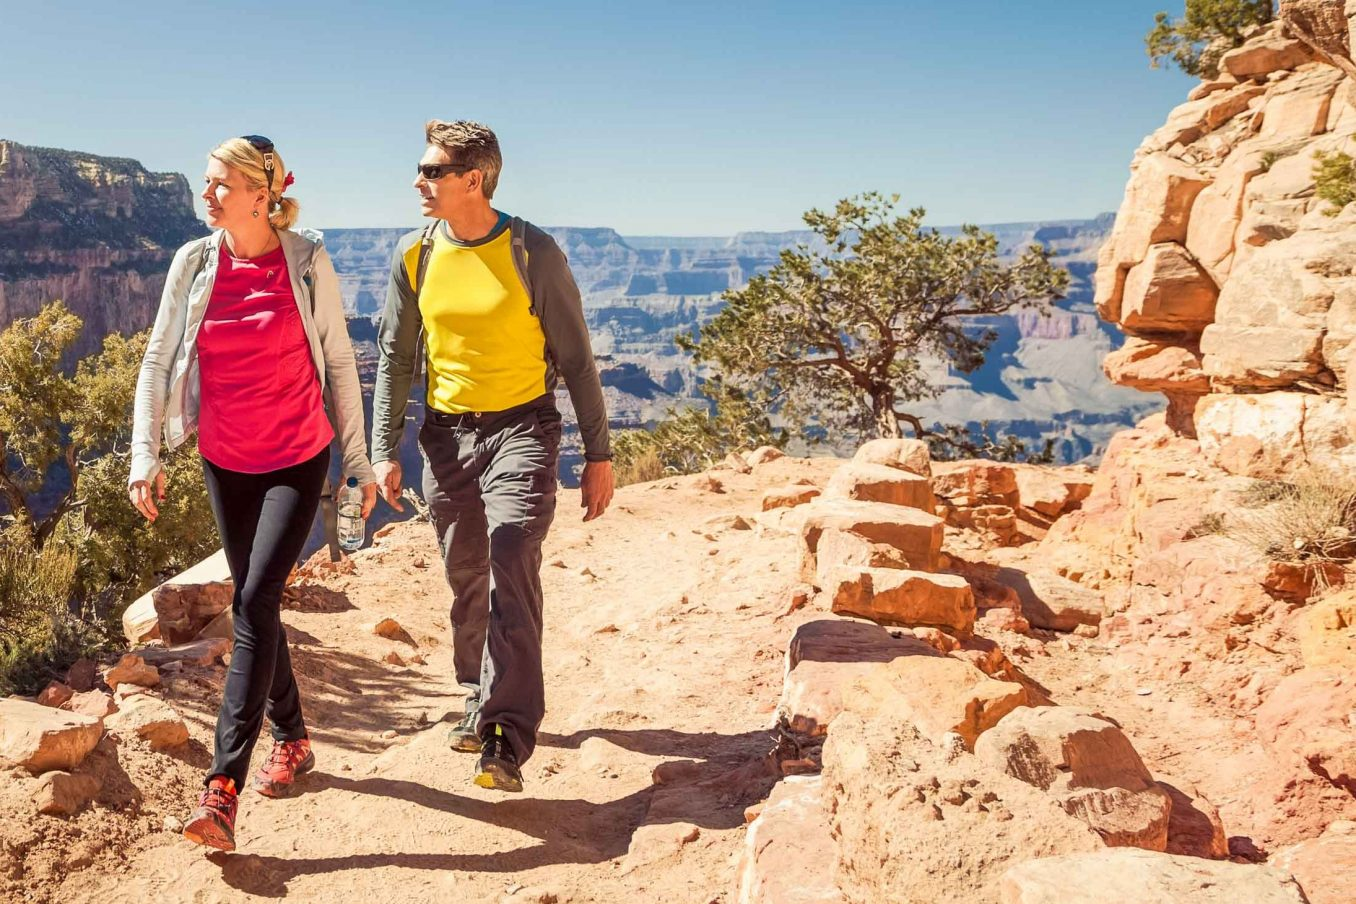 Hikers look over Grand Canyon on multi-day hiking trip